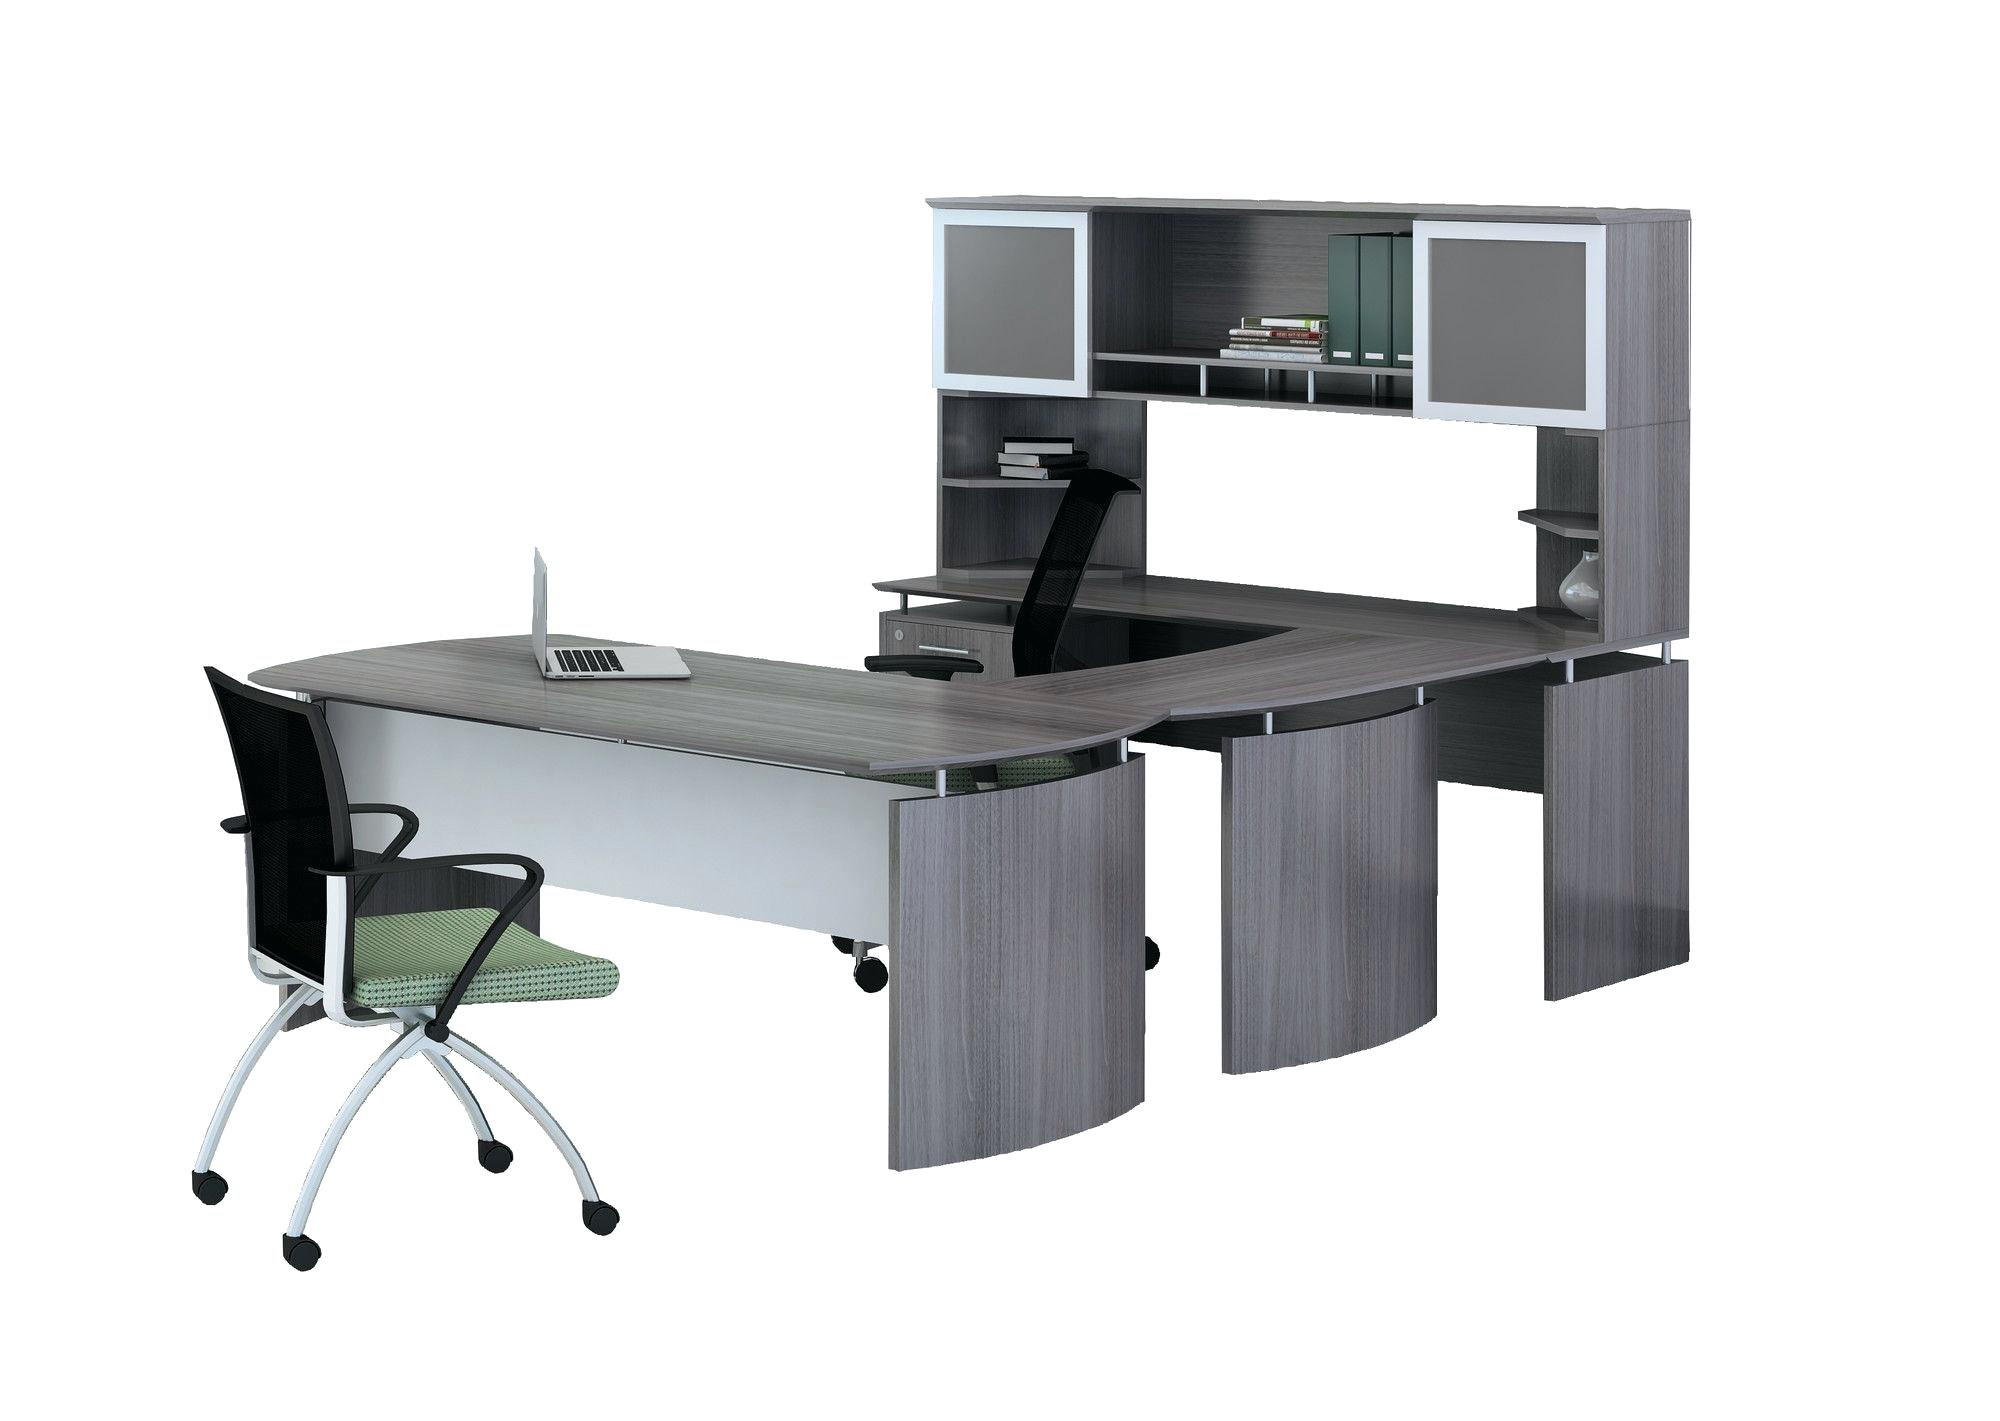 Perfect Style of Office Depot Desks for Your Workspace Ideas: Office Depot Desks | Office Depot Desk Organizer | Office Max L Shaped Desk